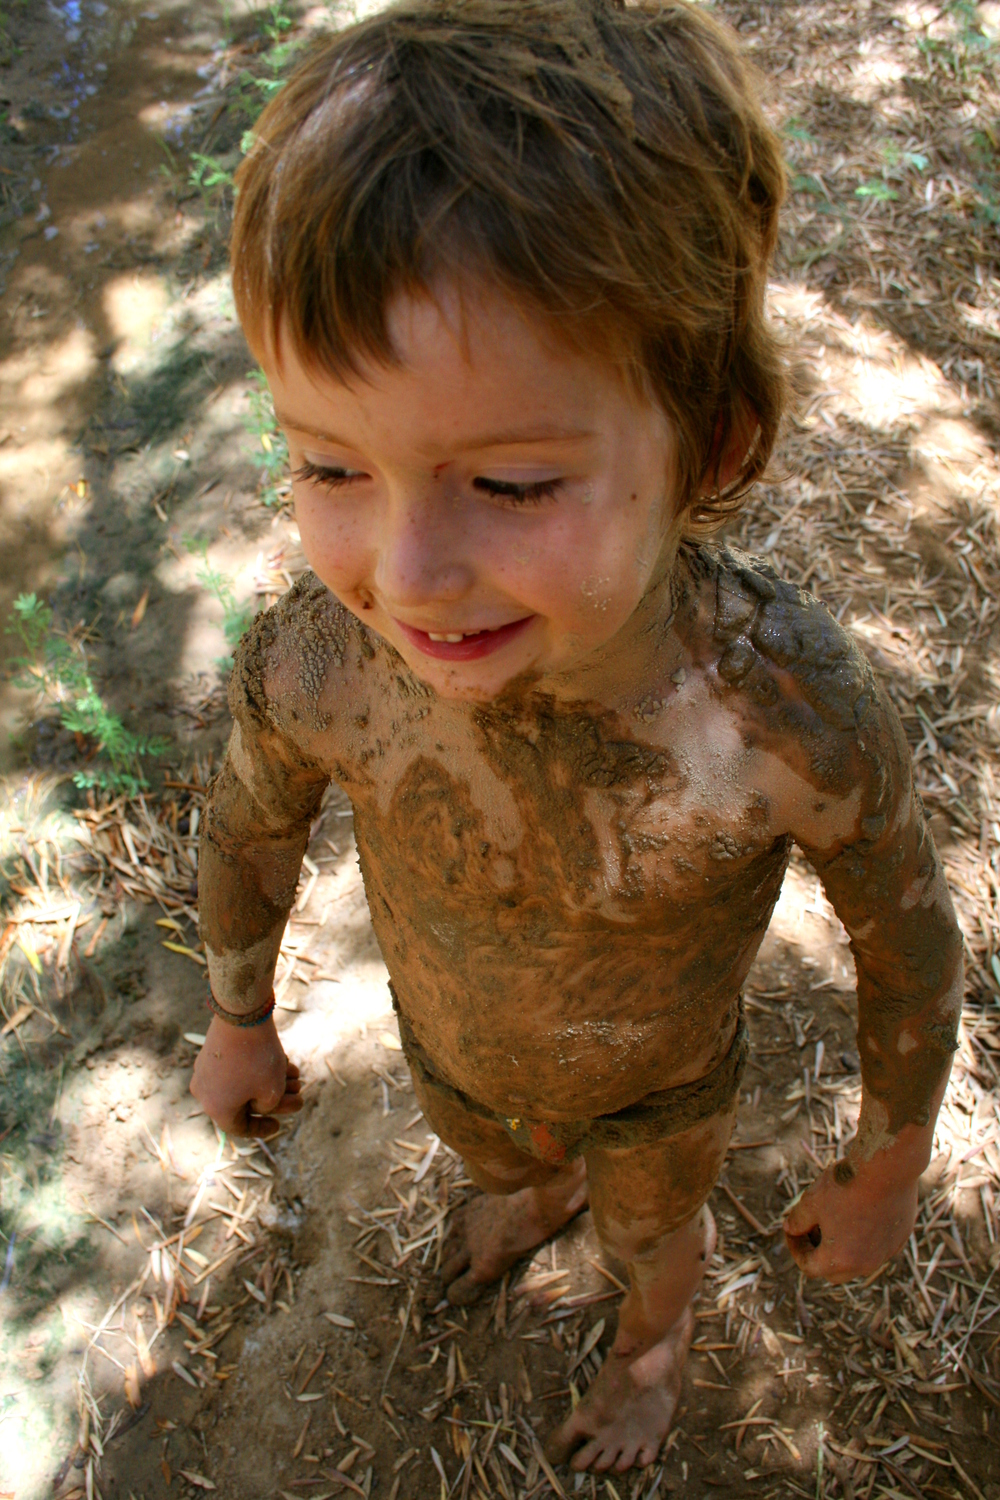 Luca covered in mud